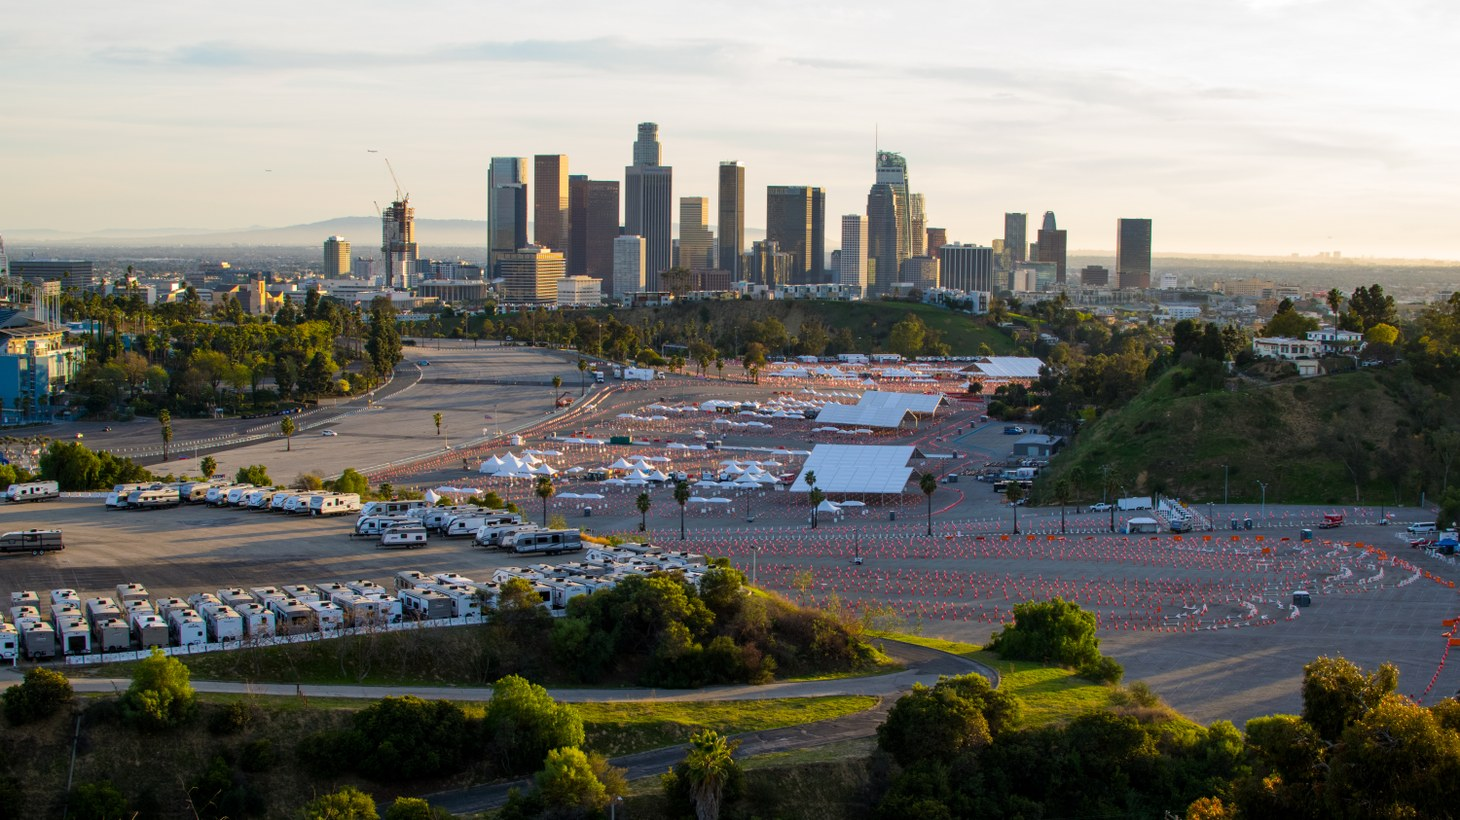 Dodger Stadium's coronavirus vaccination site shut down on February 12, 2021 due to shortages in doses. It's set to reopen on February 16, 2021.